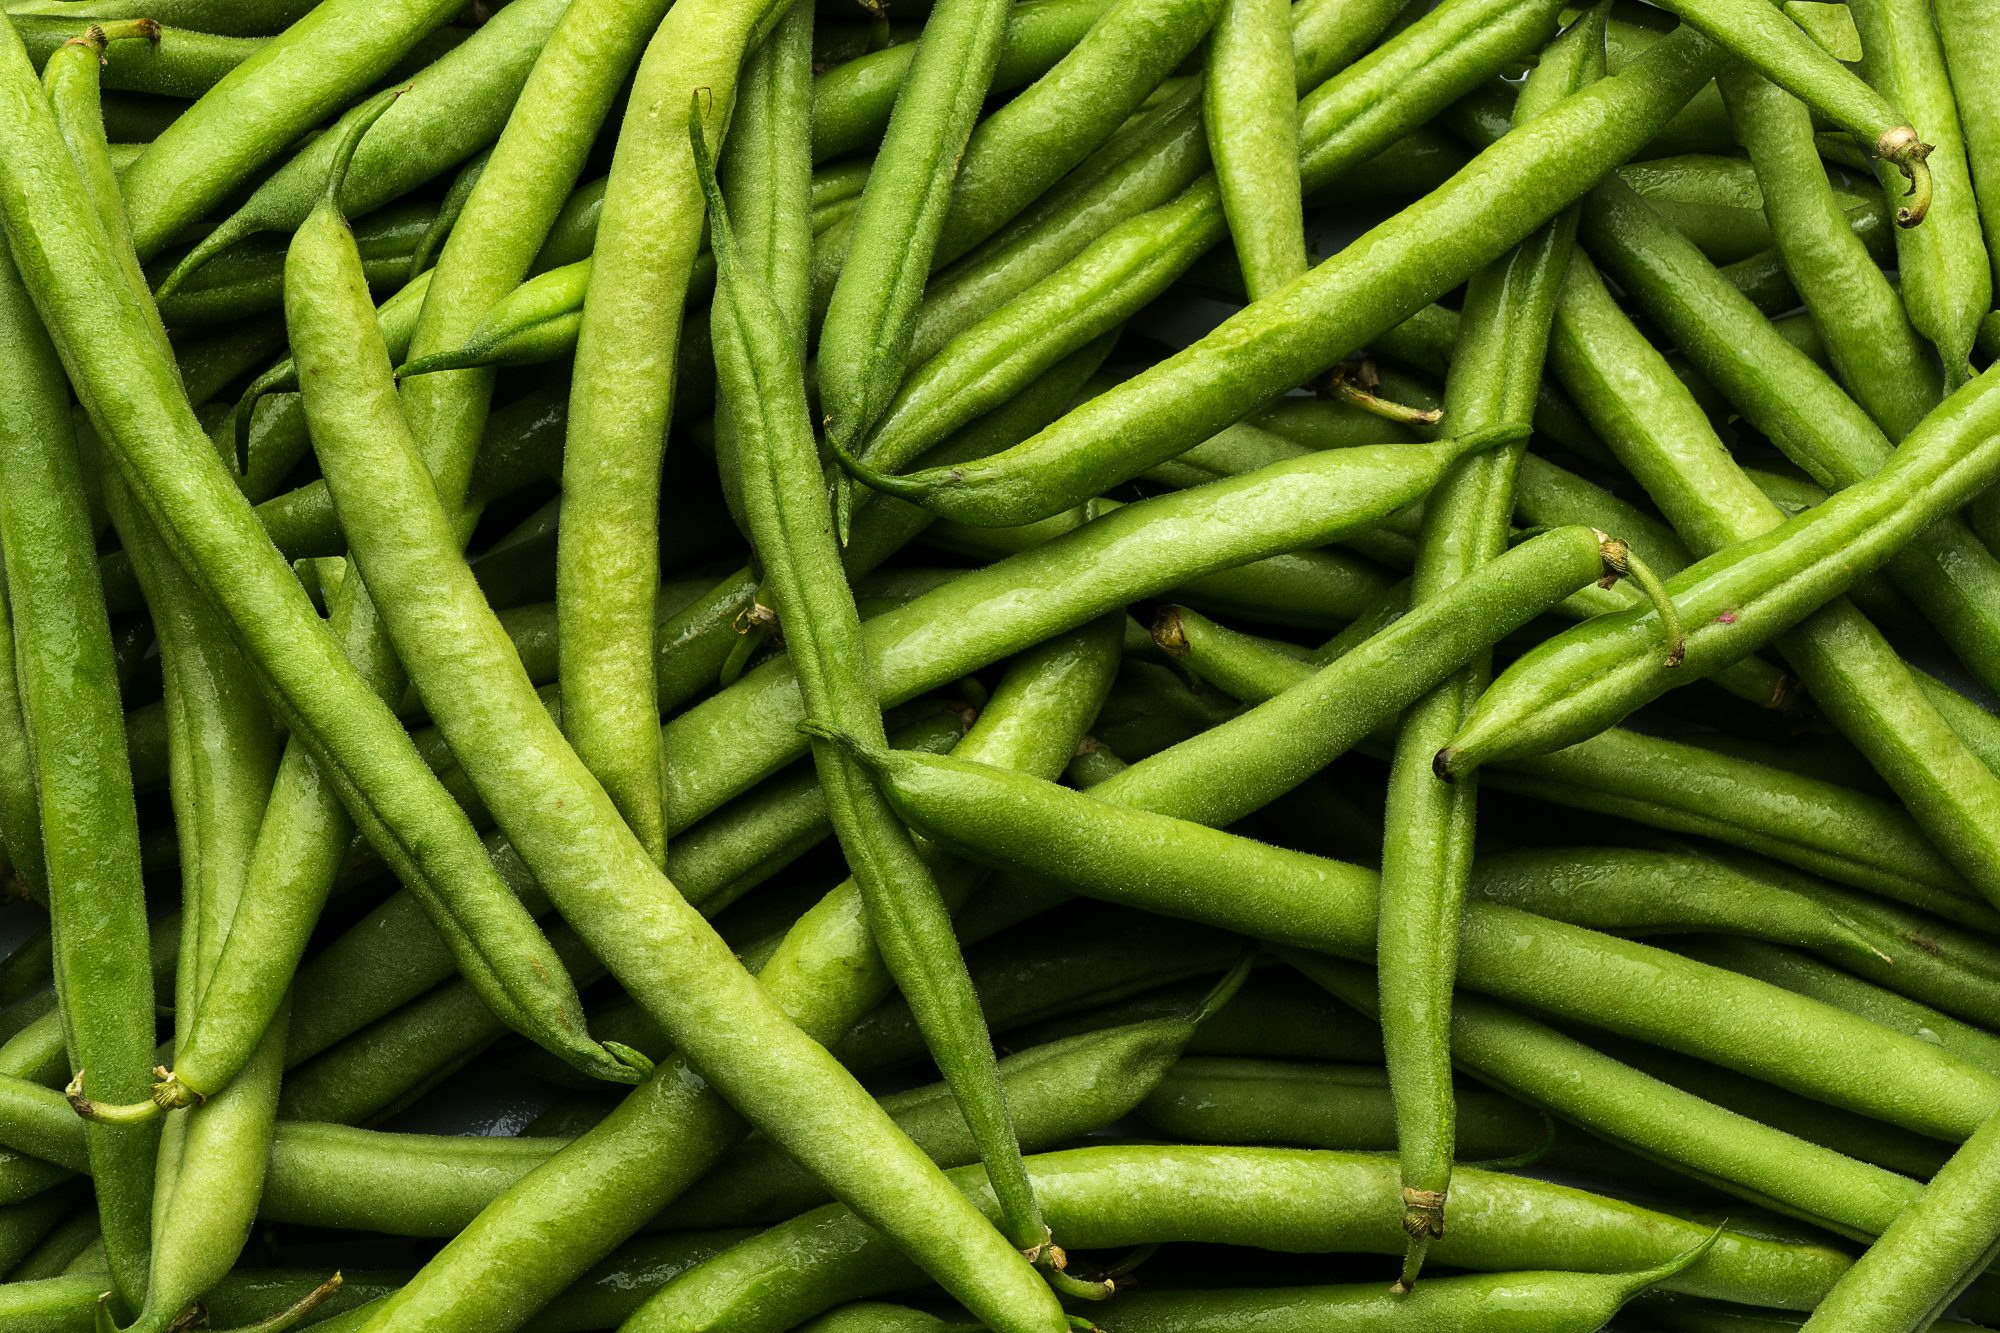 Green Beans Getty 3/31/20